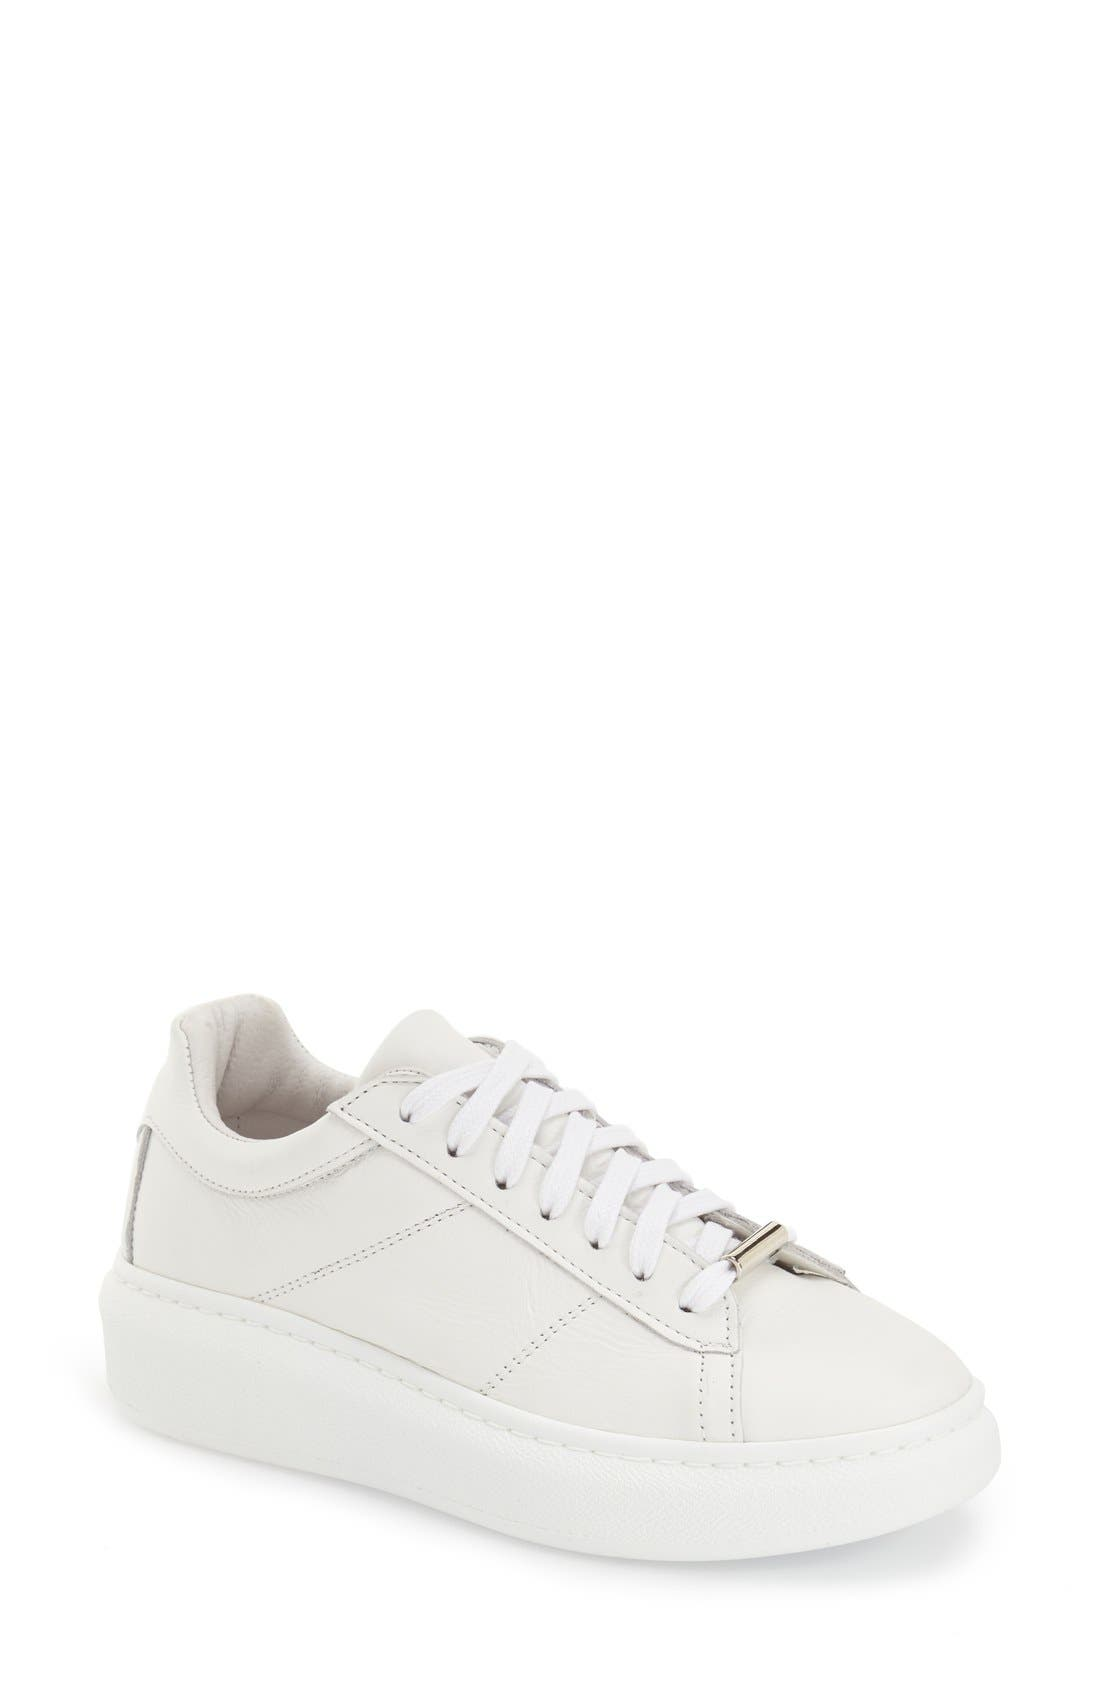 Main Image - Topshop 'Toulouse' Leather Sneaker (Women)